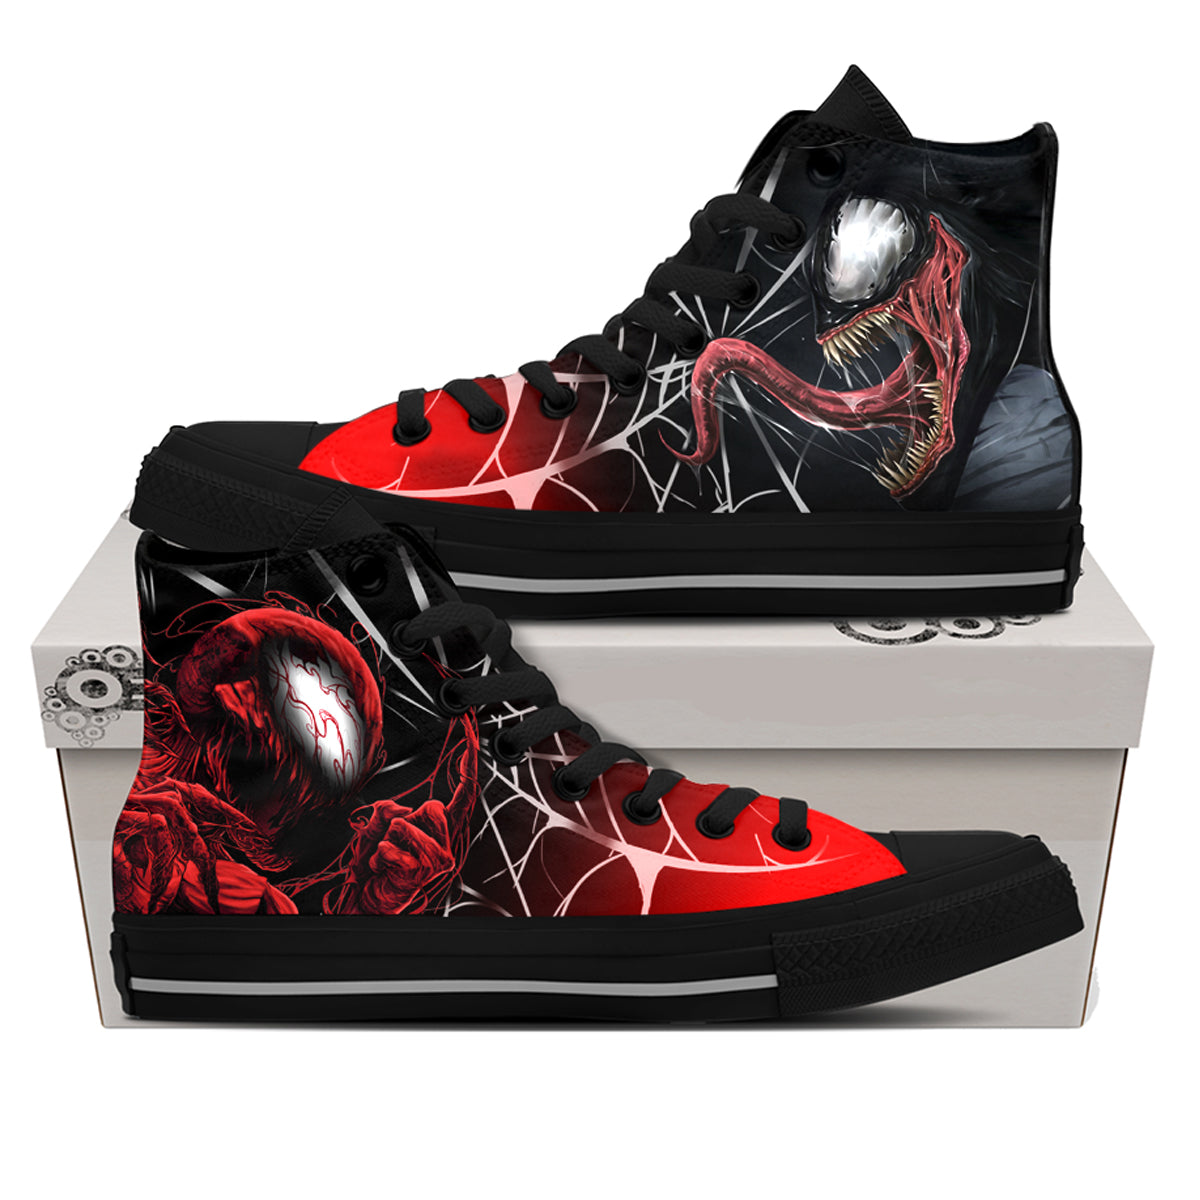 Venom vs. Carnage Shoes